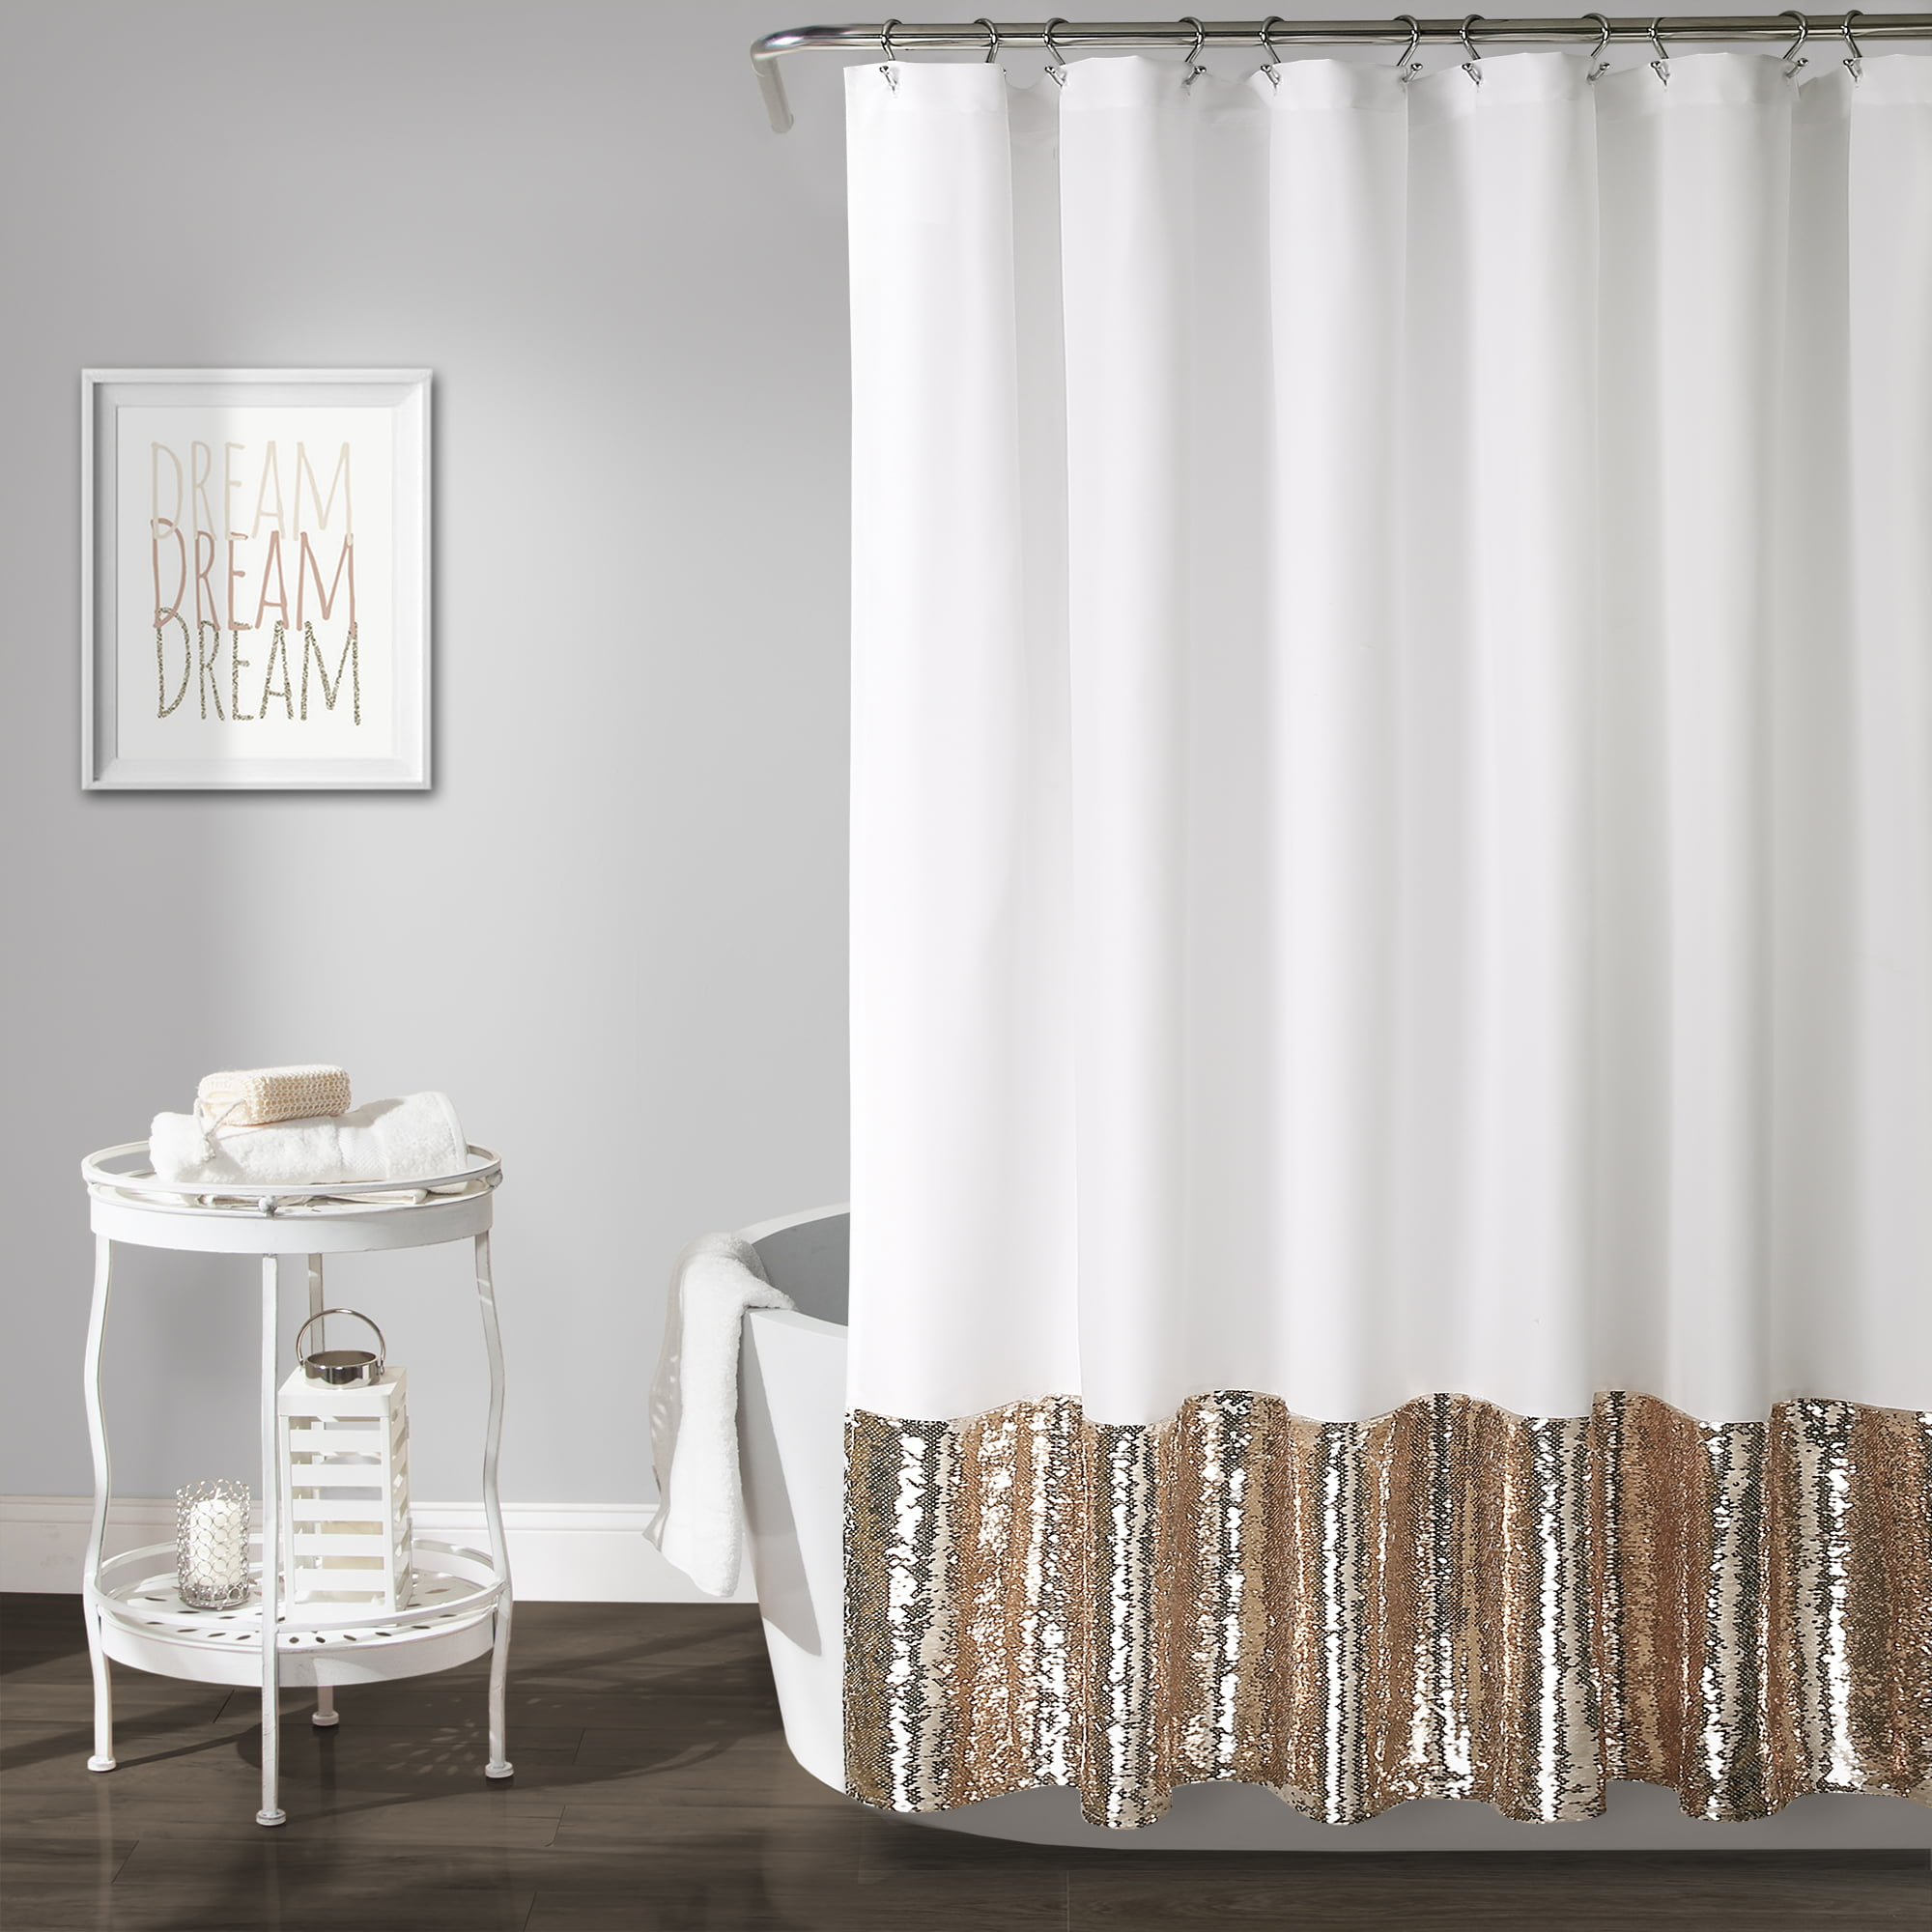 Mermaid Sequins Spa Shower Curtain Gold - Lush Décor